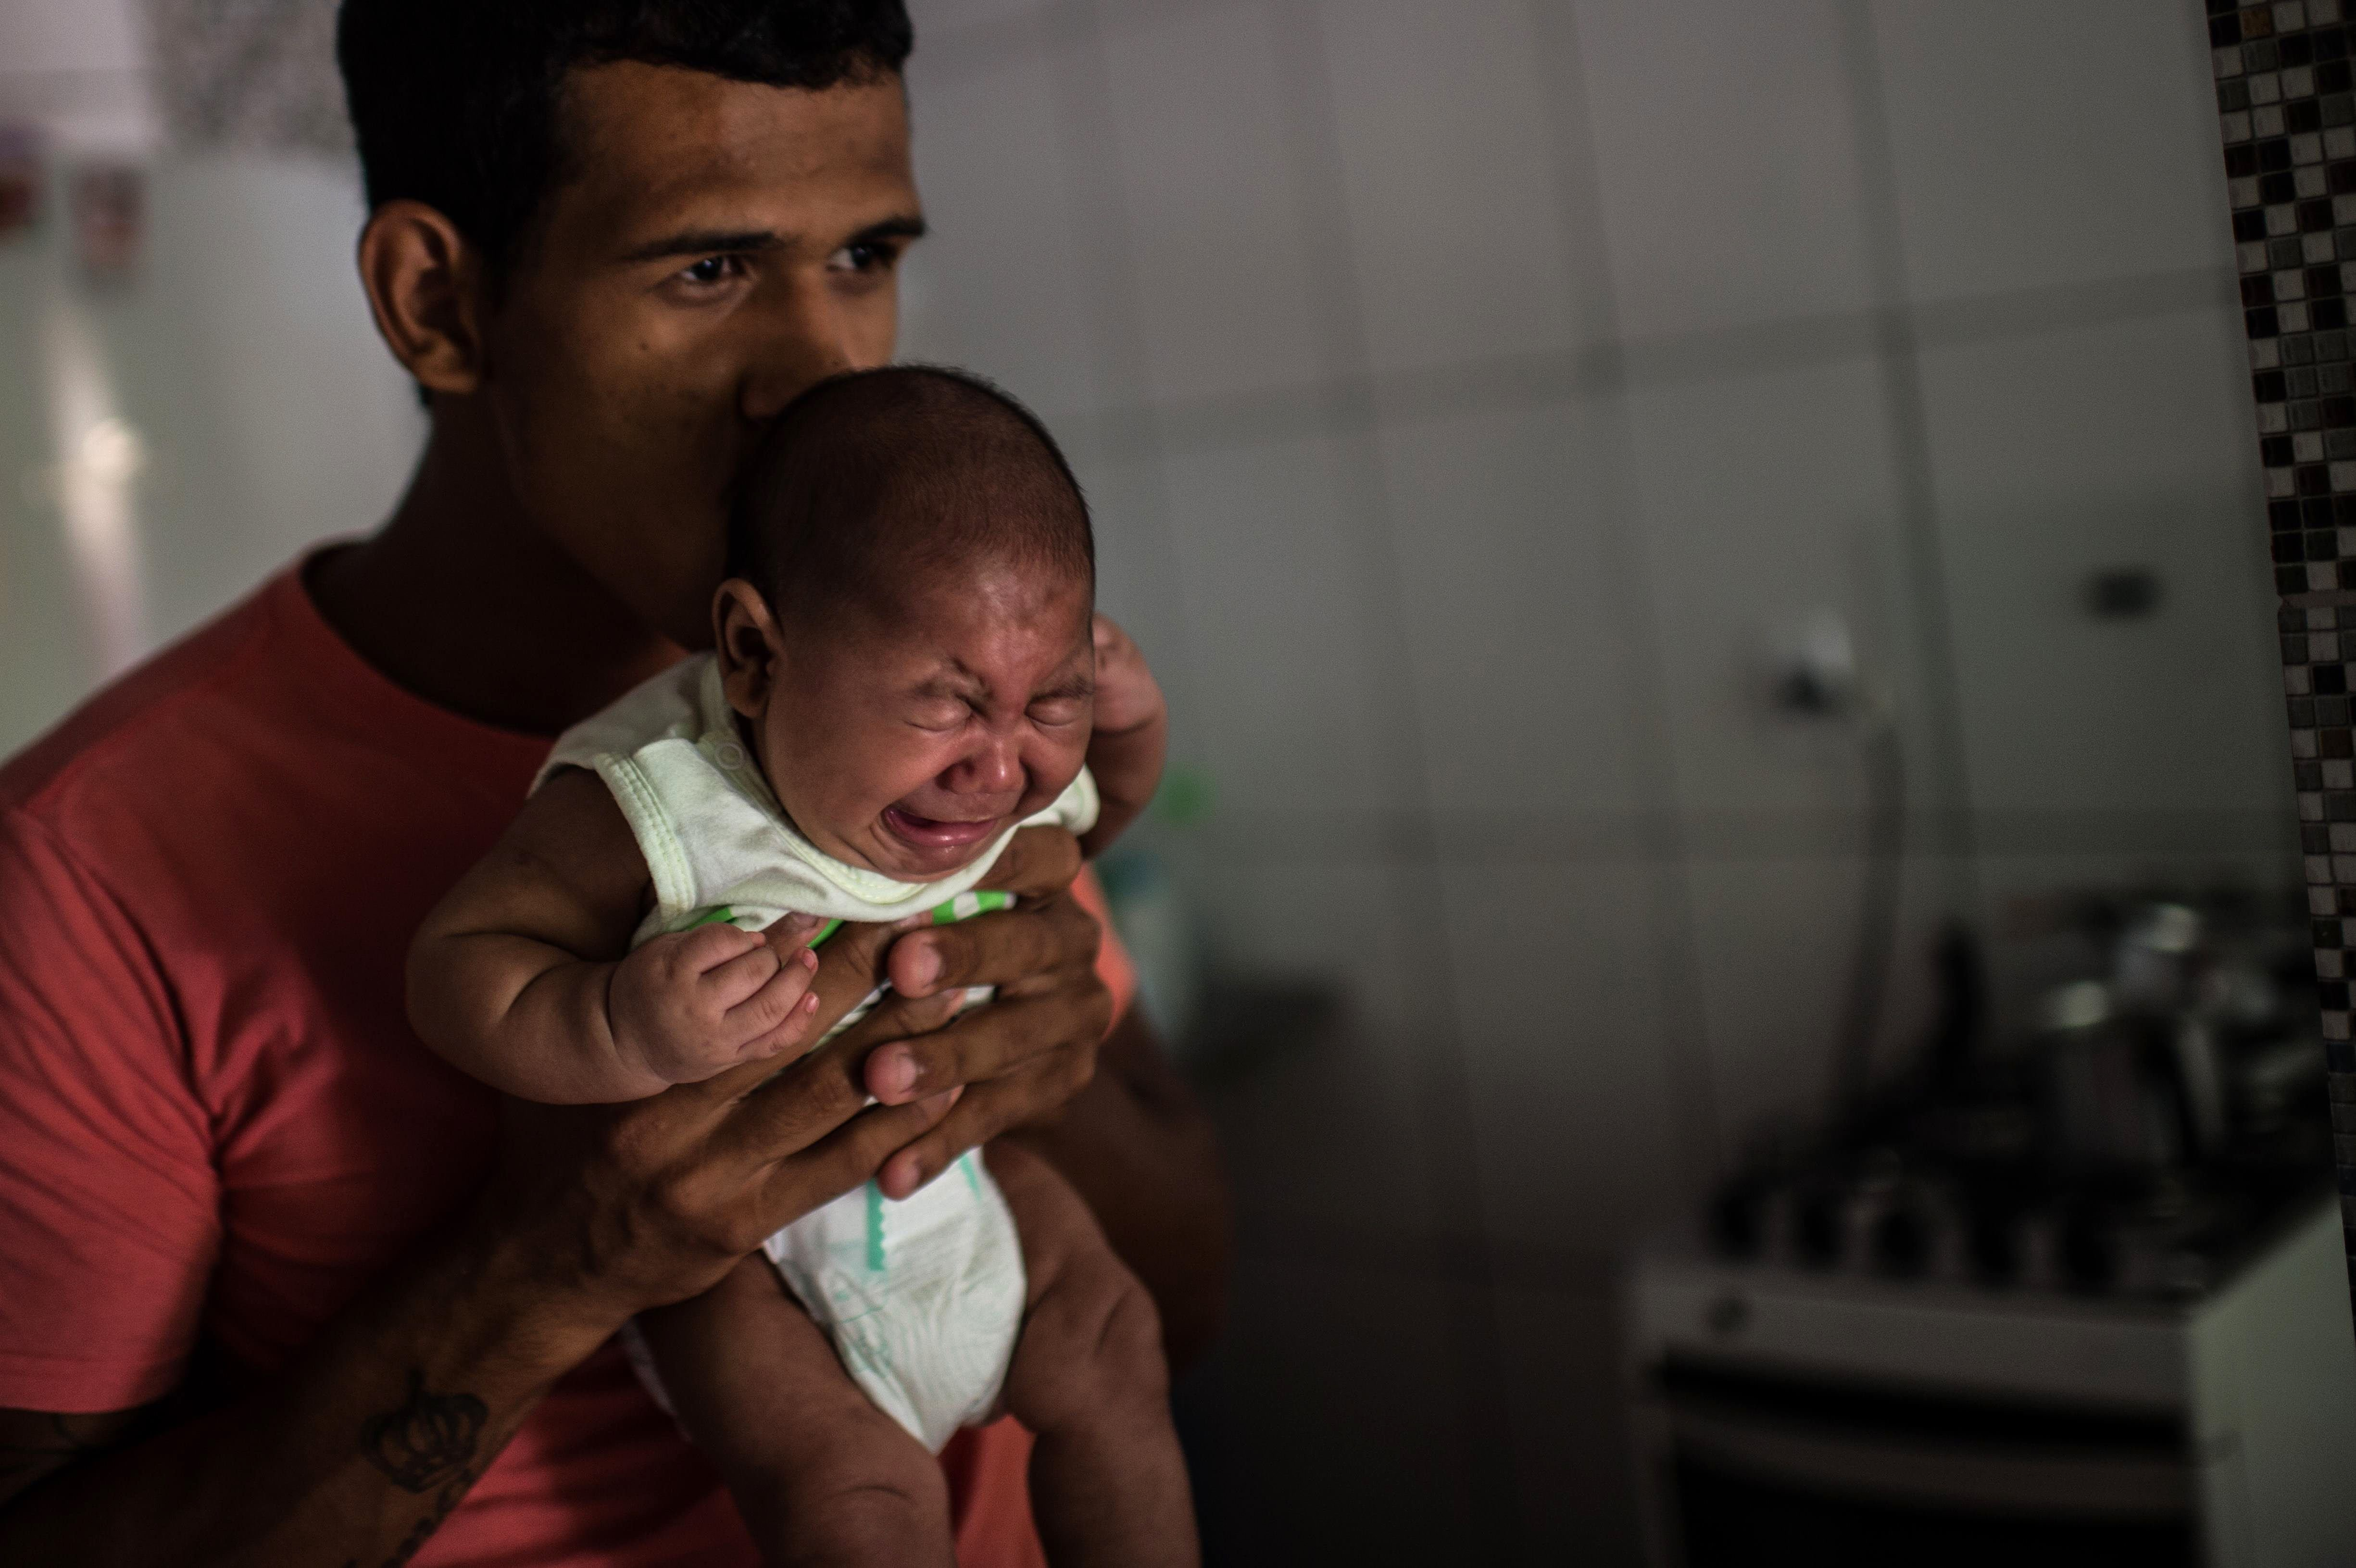 Matheus Lima, 22, holds his two-year-old son, Pietro, who suffers from microcephaly, at his home in Salvador, Brazil, Jan. 28 , 2016.